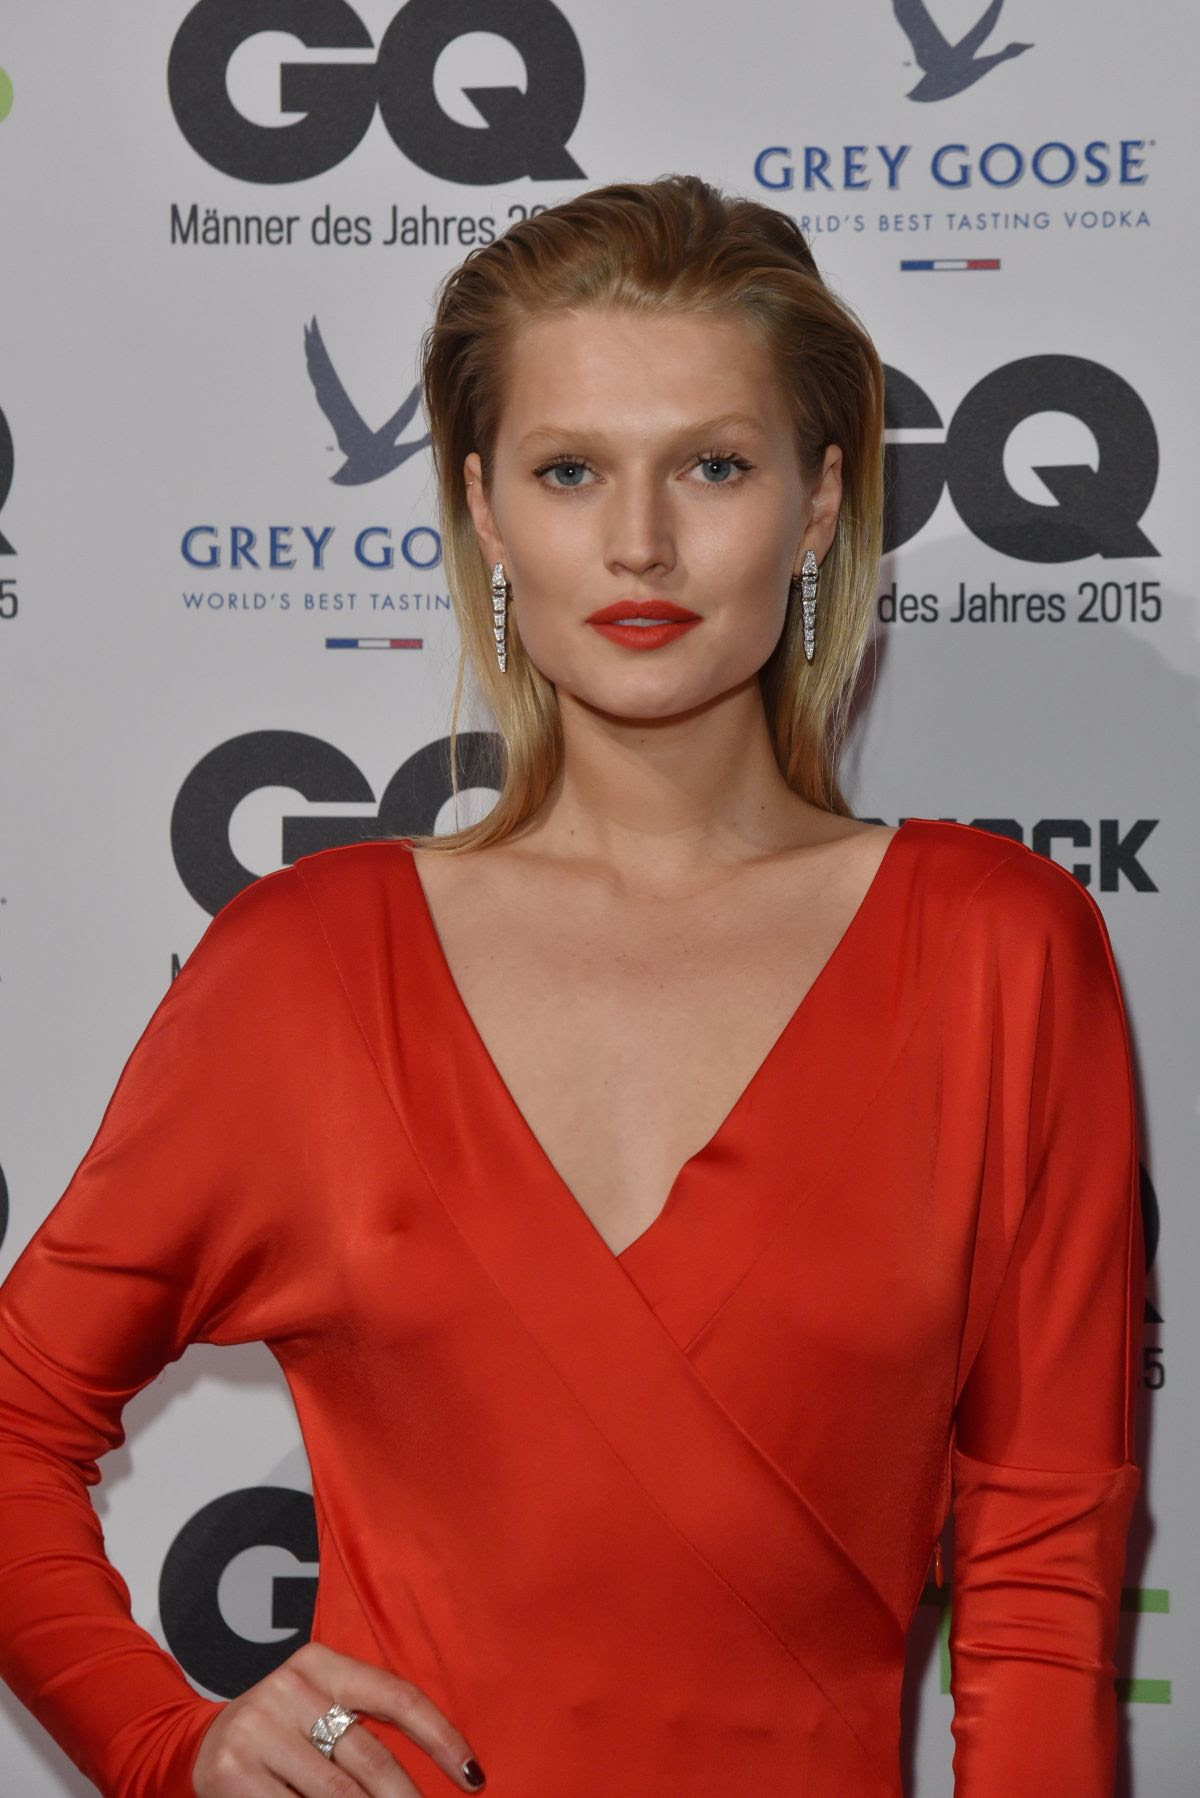 TONI GARRN at GQ Men of the Year Award in Berlin 11/05/2015